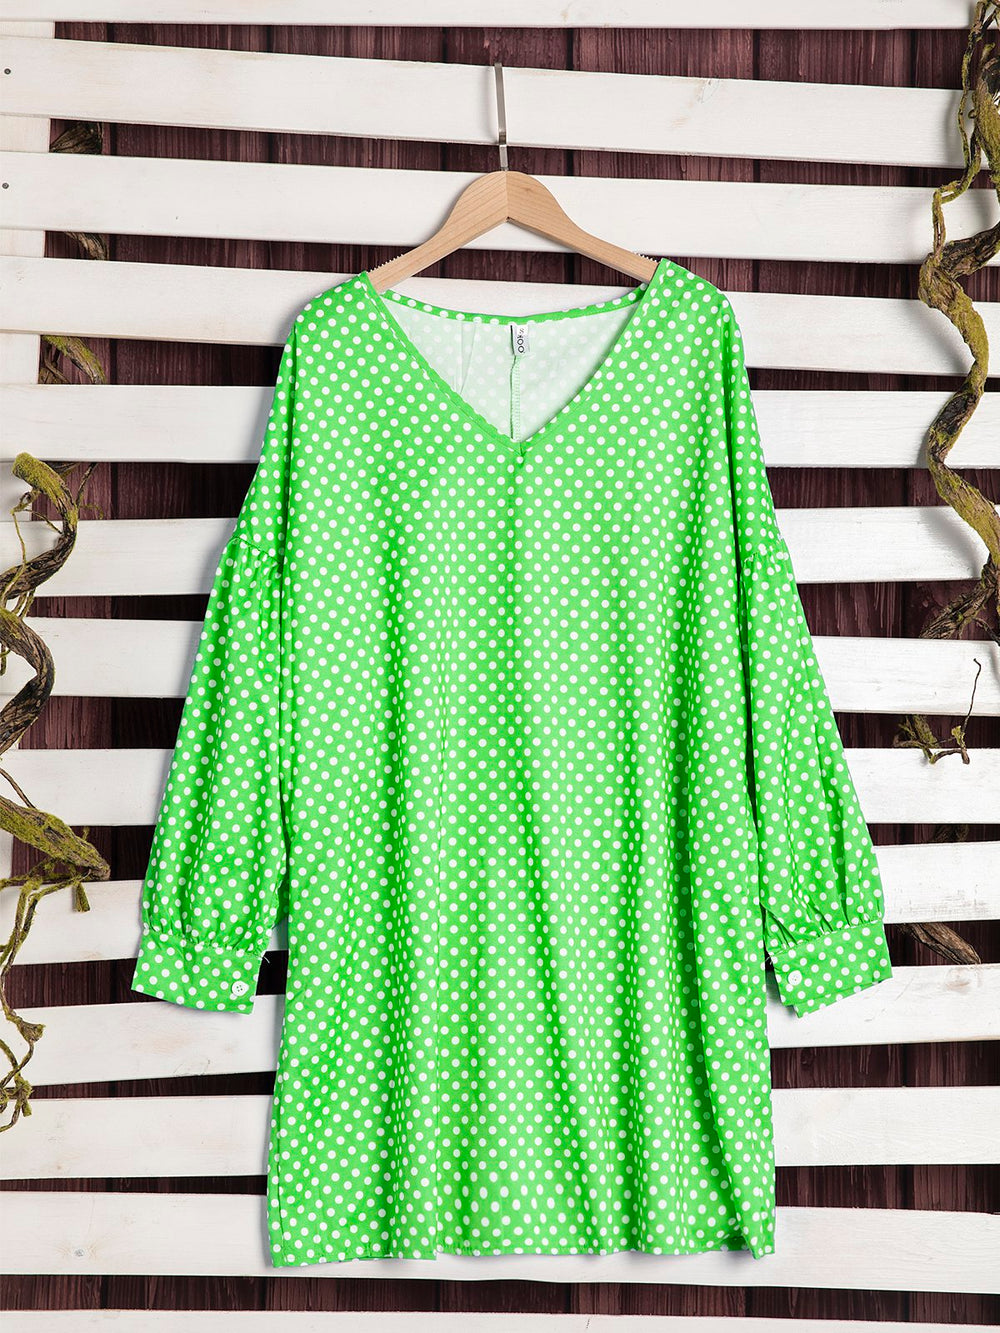 Robes Tunique Imprimées à Pois Polka